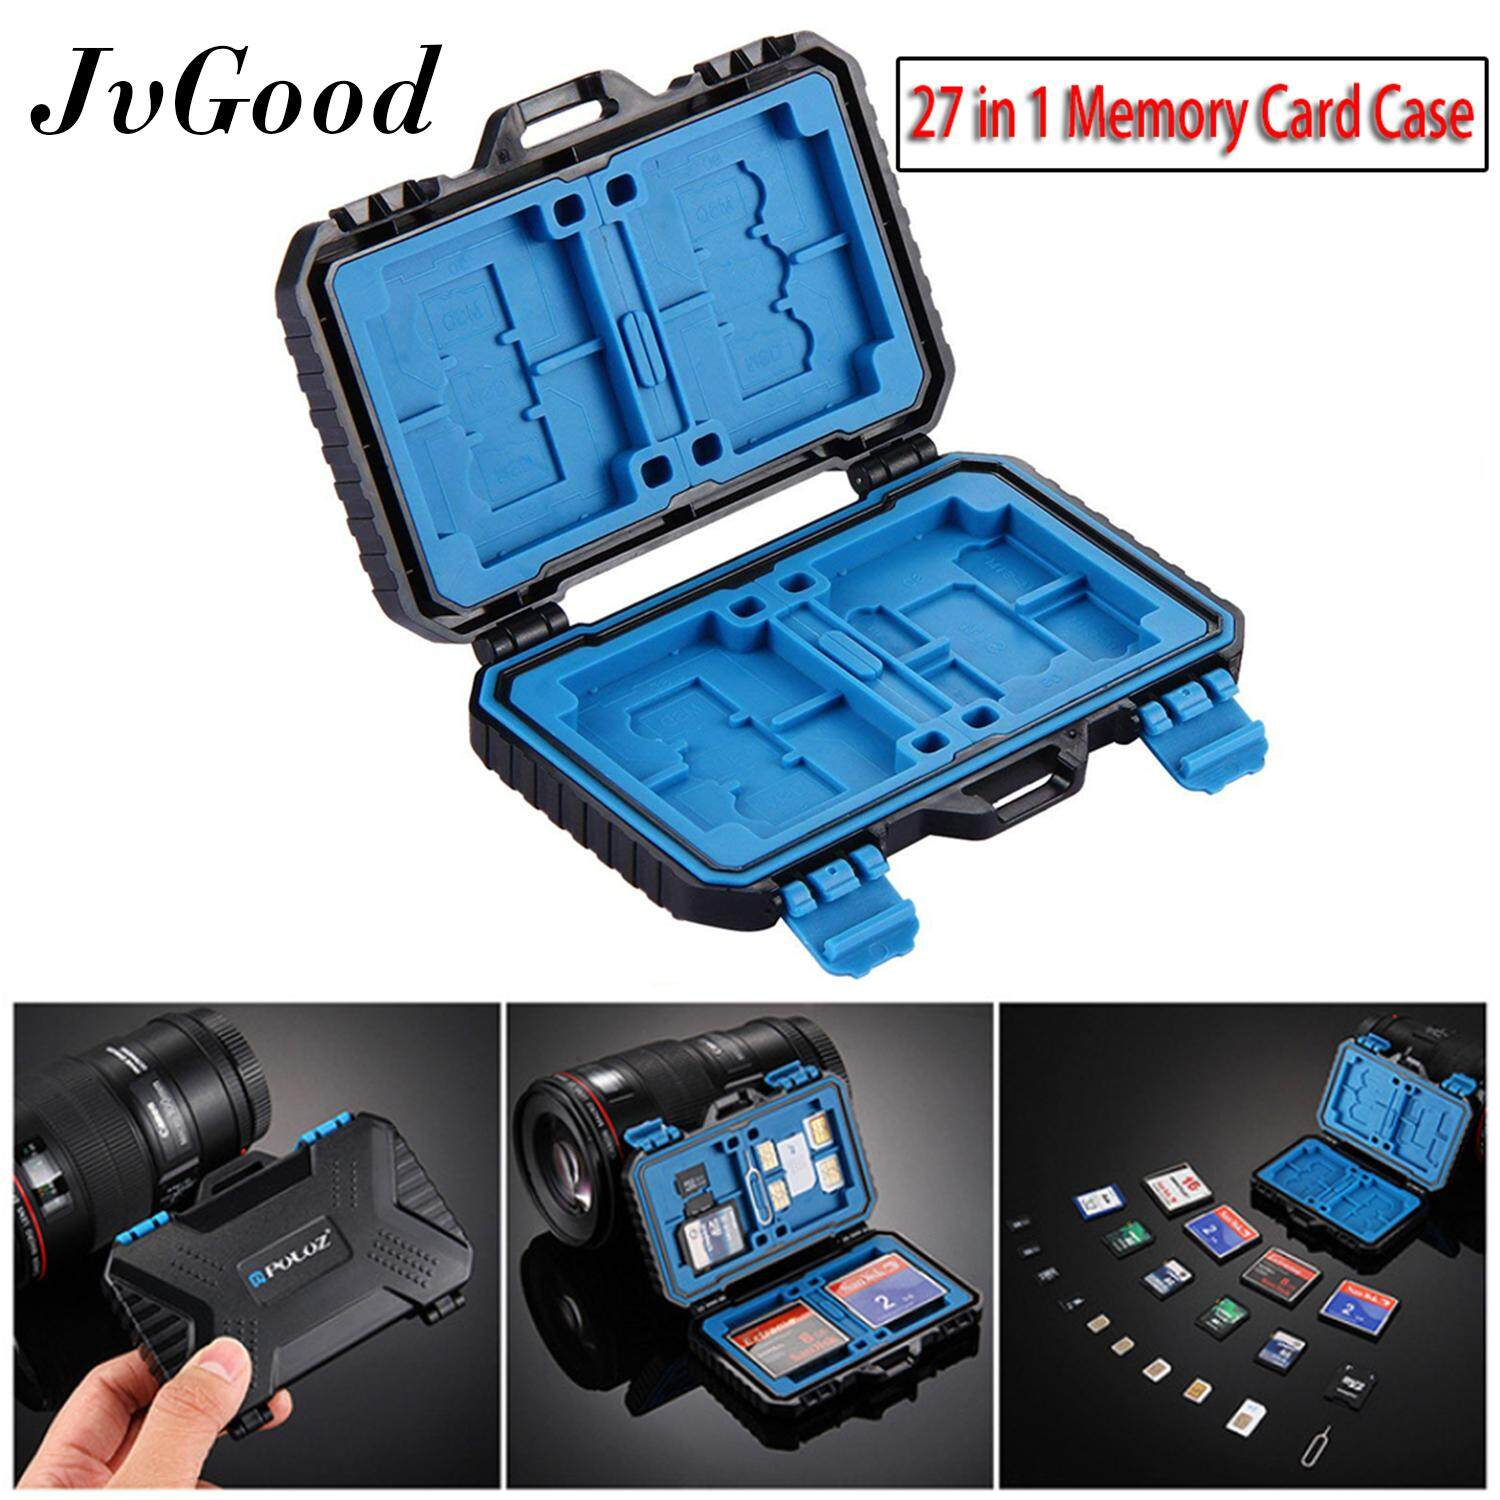 JvGood เมมโมรี่การ์ด box Memory Card Case SD Card Storage Box Waterproof Shockproof Protection Micro SD Card Case Holder TF SD CF Cards Carrying Case Storage Box(27 Slots)